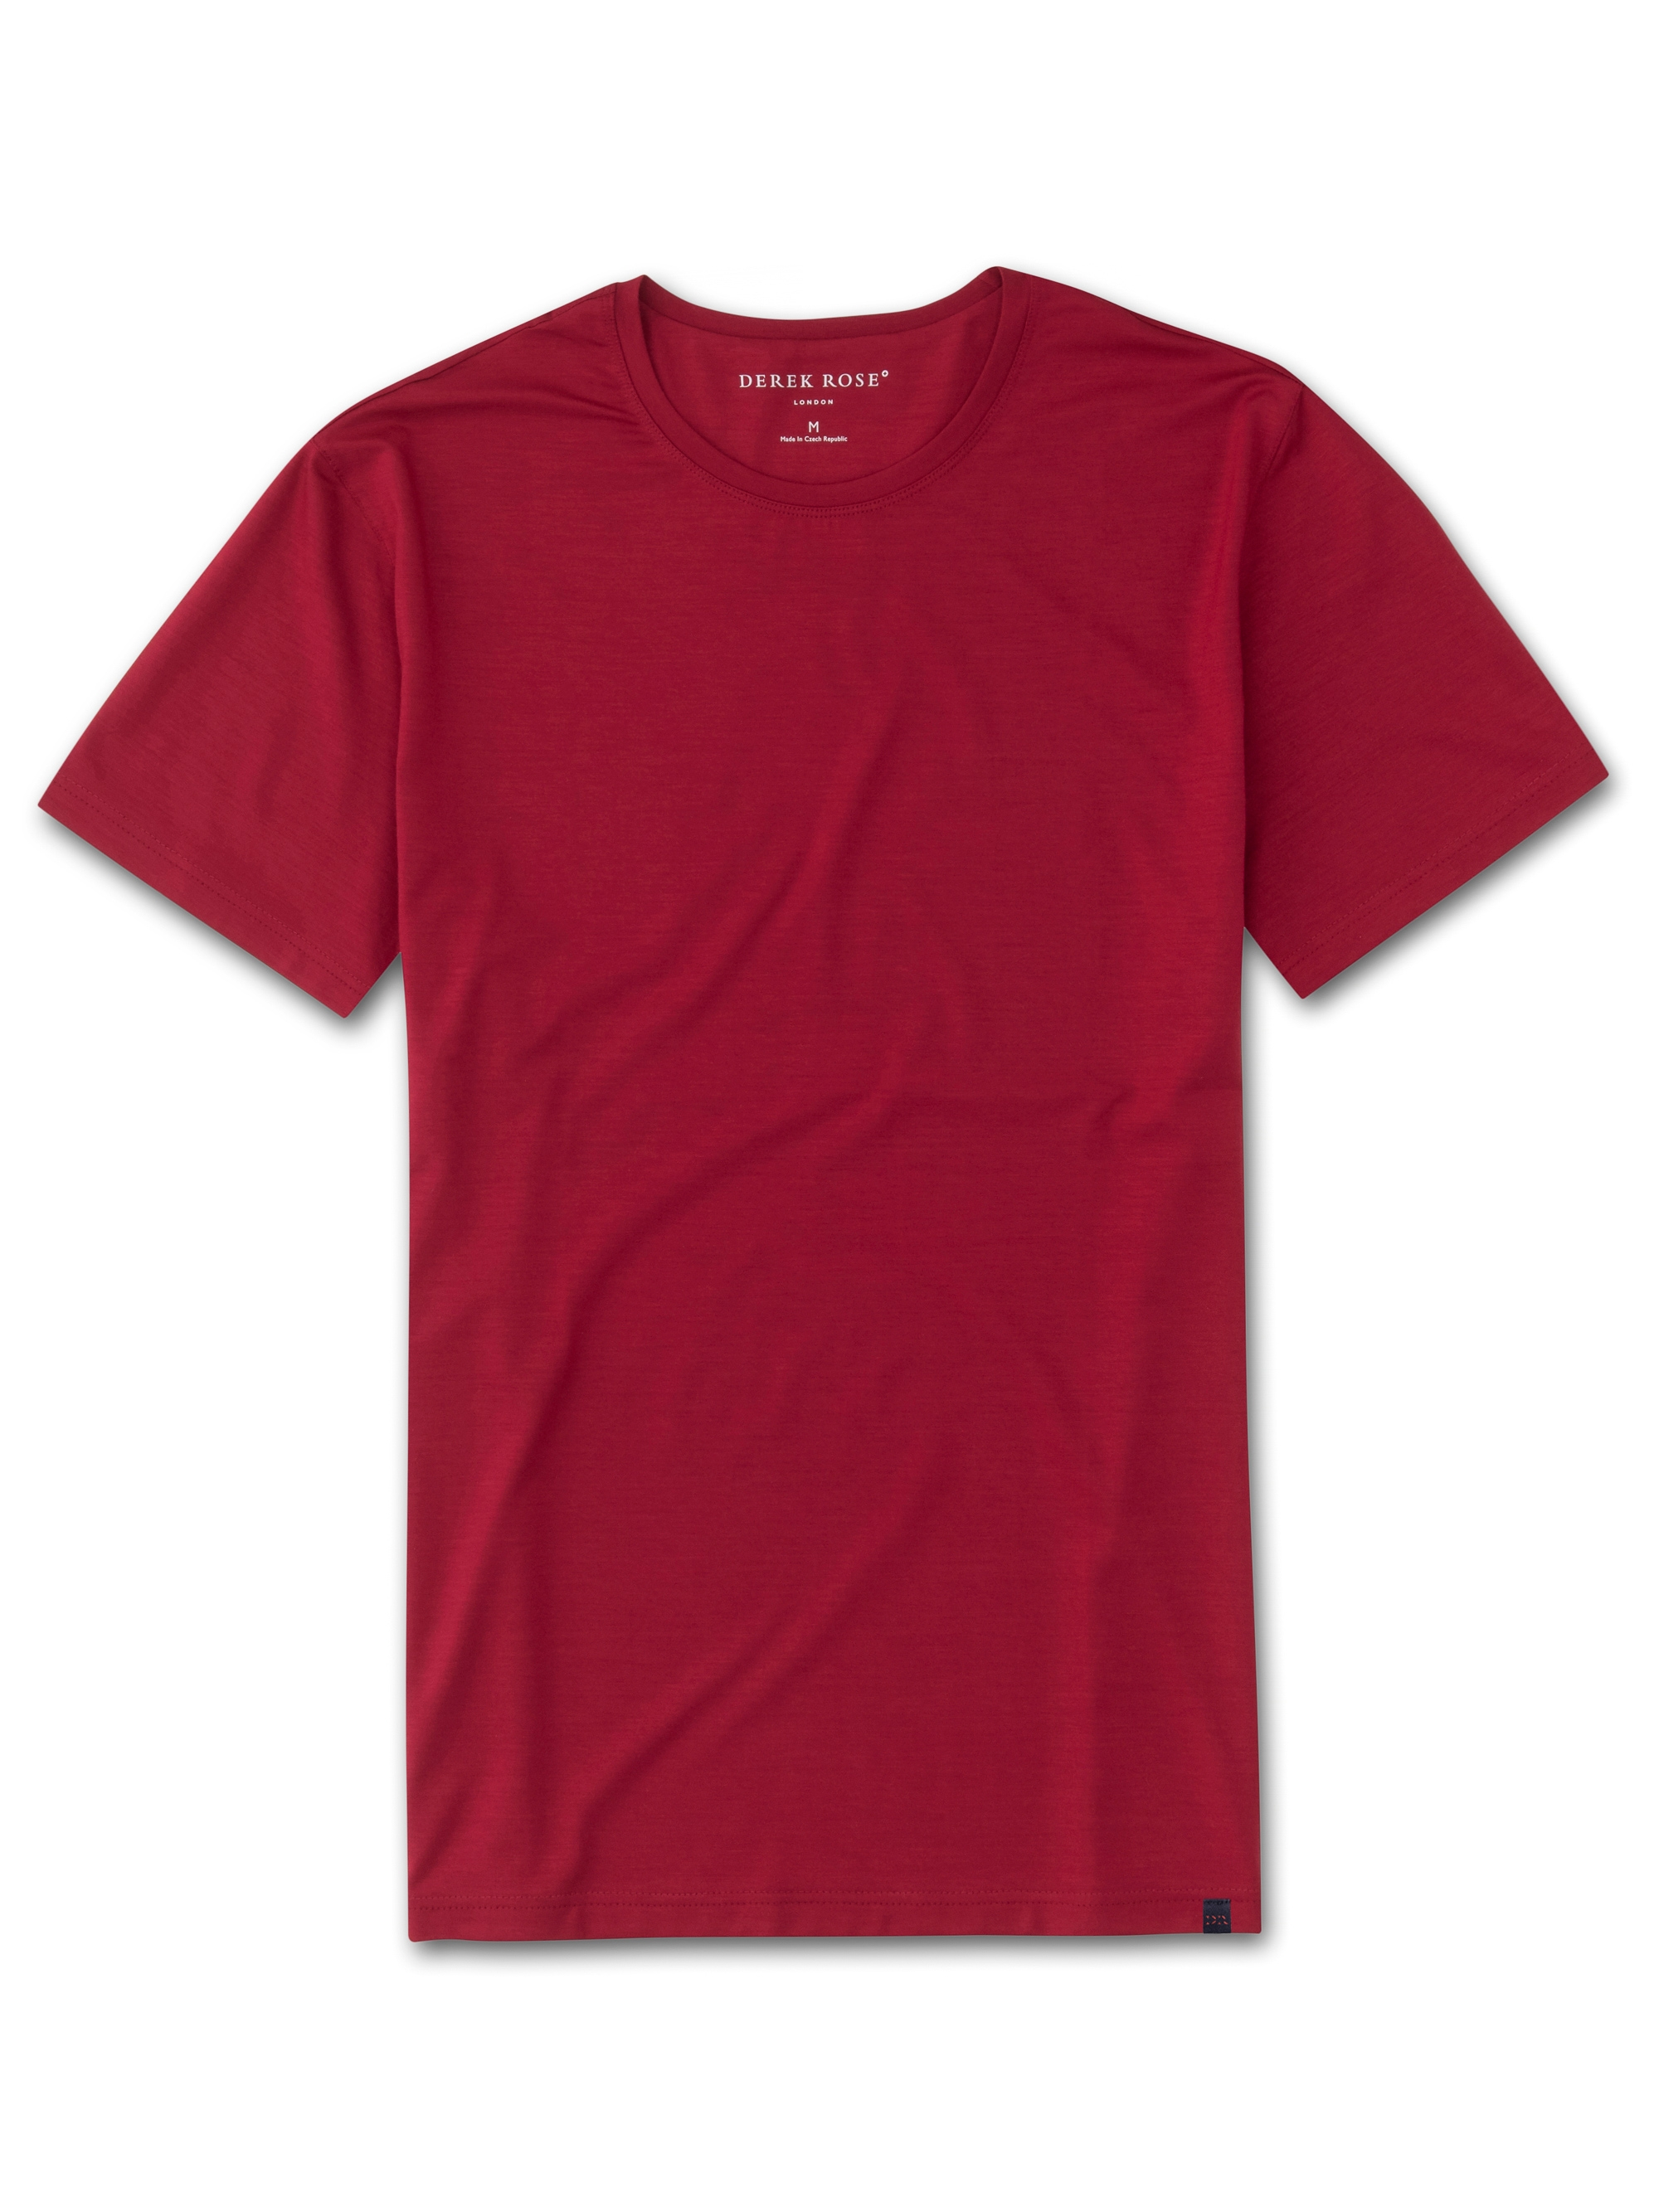 Derek Rose DEREK ROSE MEN'S SHORT SLEEVE T-SHIRT BASEL 8 MICRO MODAL STRETCH RED